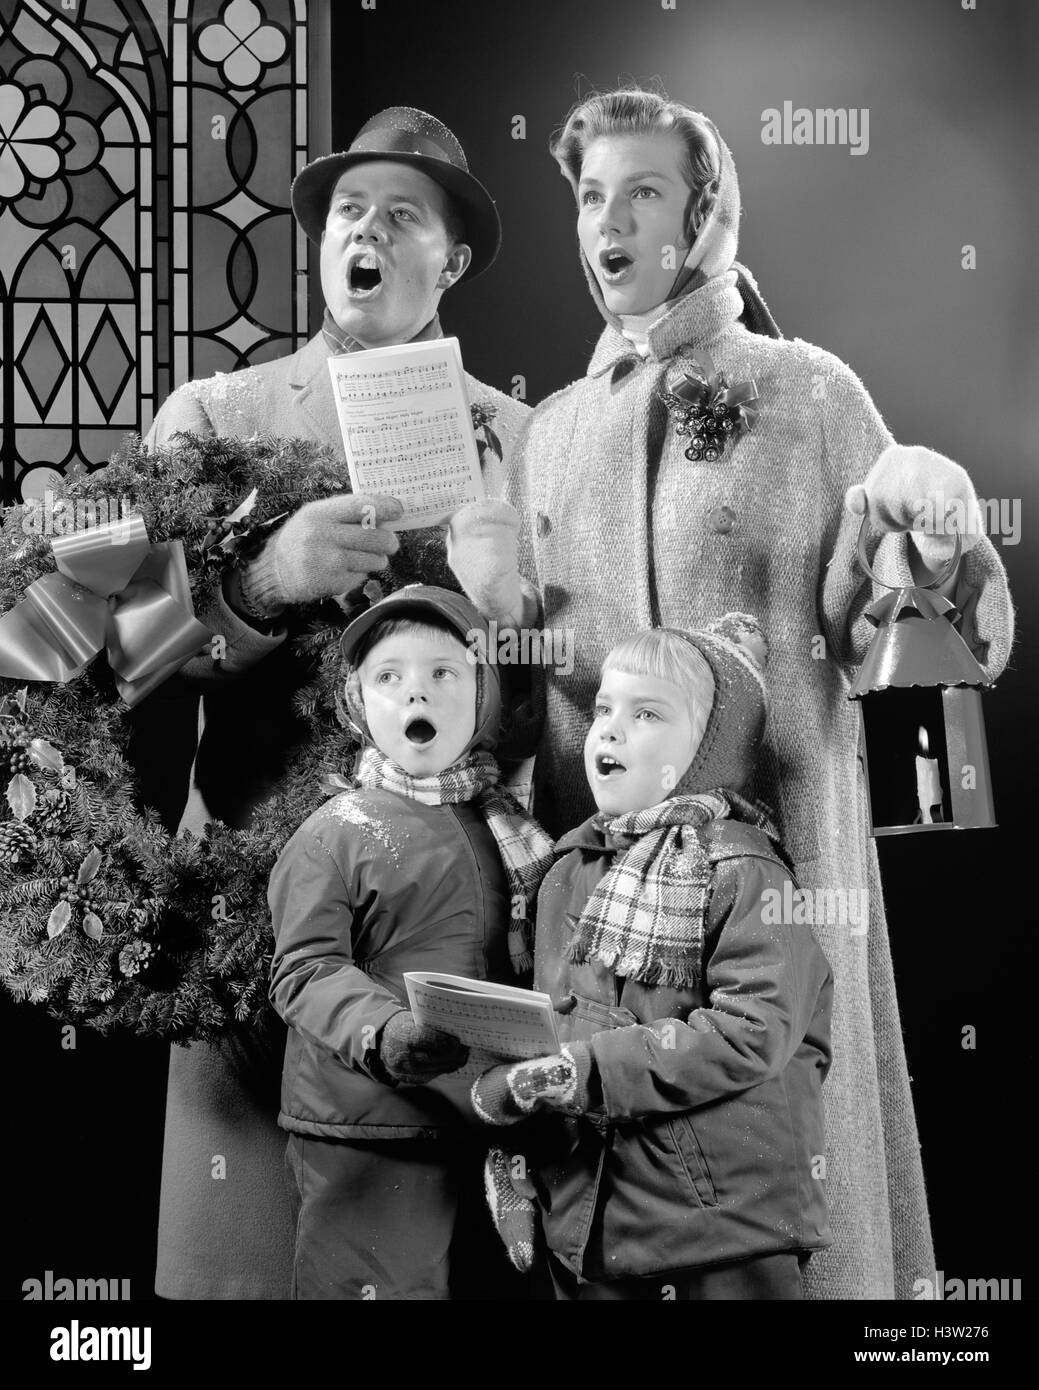 1950s FAMILY OF FOUR SON DAUGHTER SINGING CHRISTMAS CAROLS DAD HOLDING WREATH MOM HOLDING CANDLE LANTERN - Stock Image